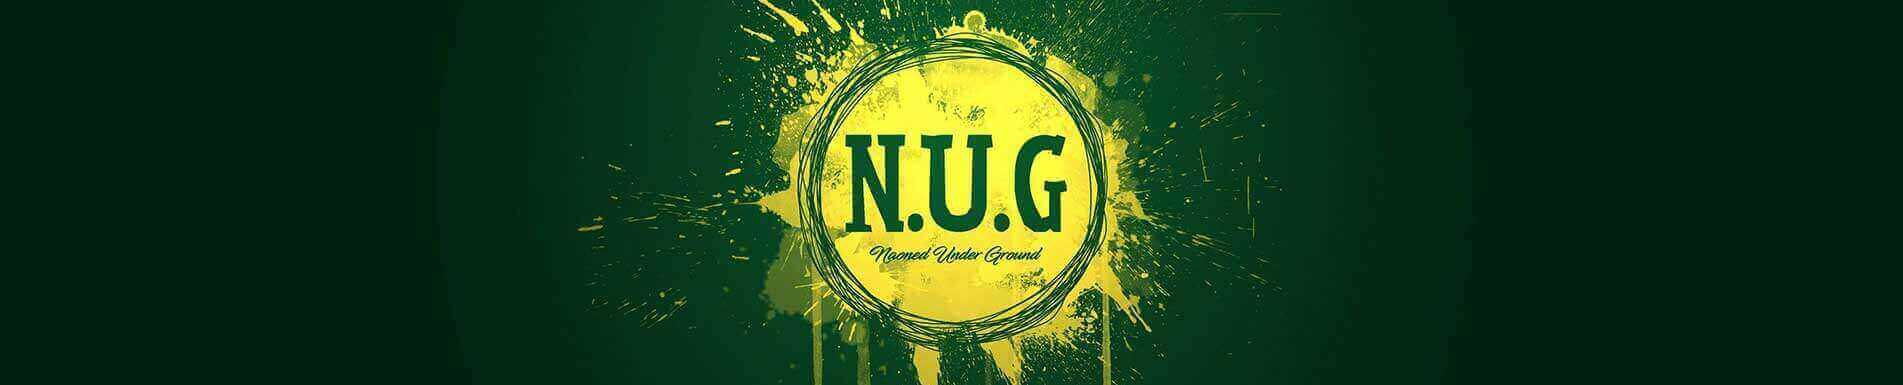 e liquide  naoned undergroud nug mix and vape